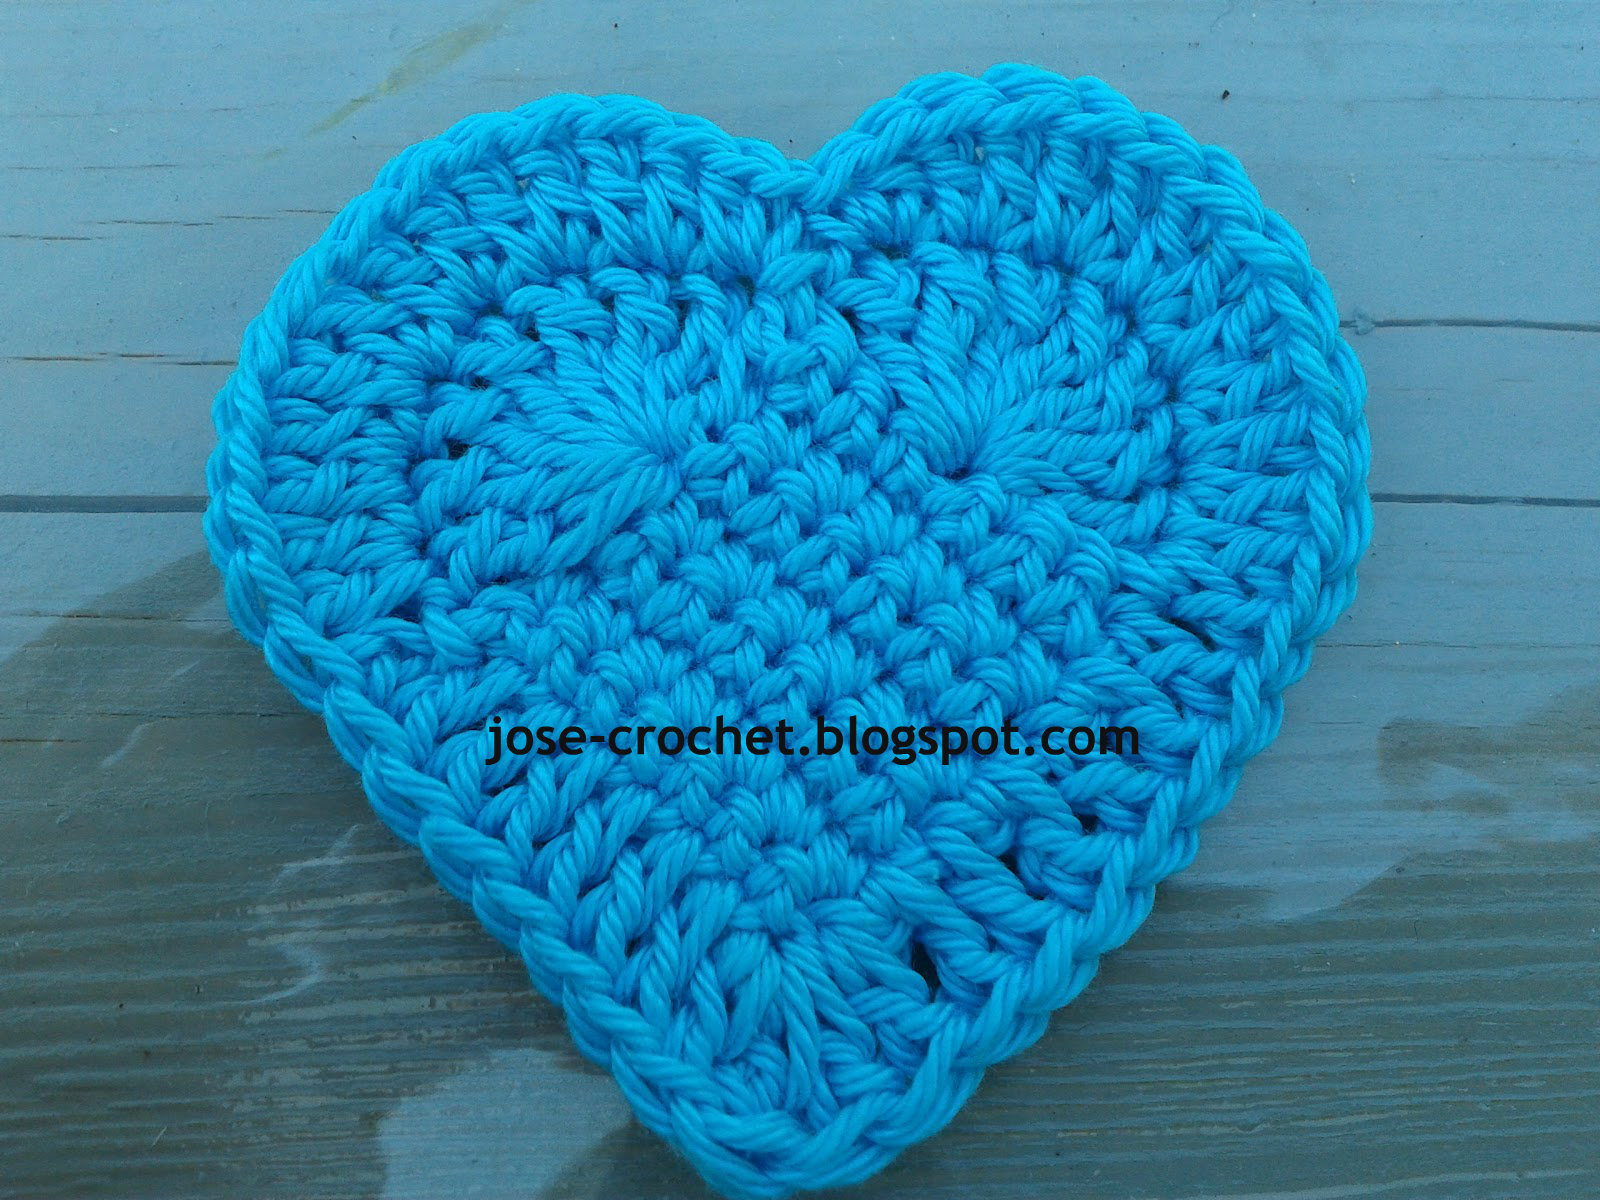 Crochet Heart : JosE Crochet: Free crochet pattern heart ?